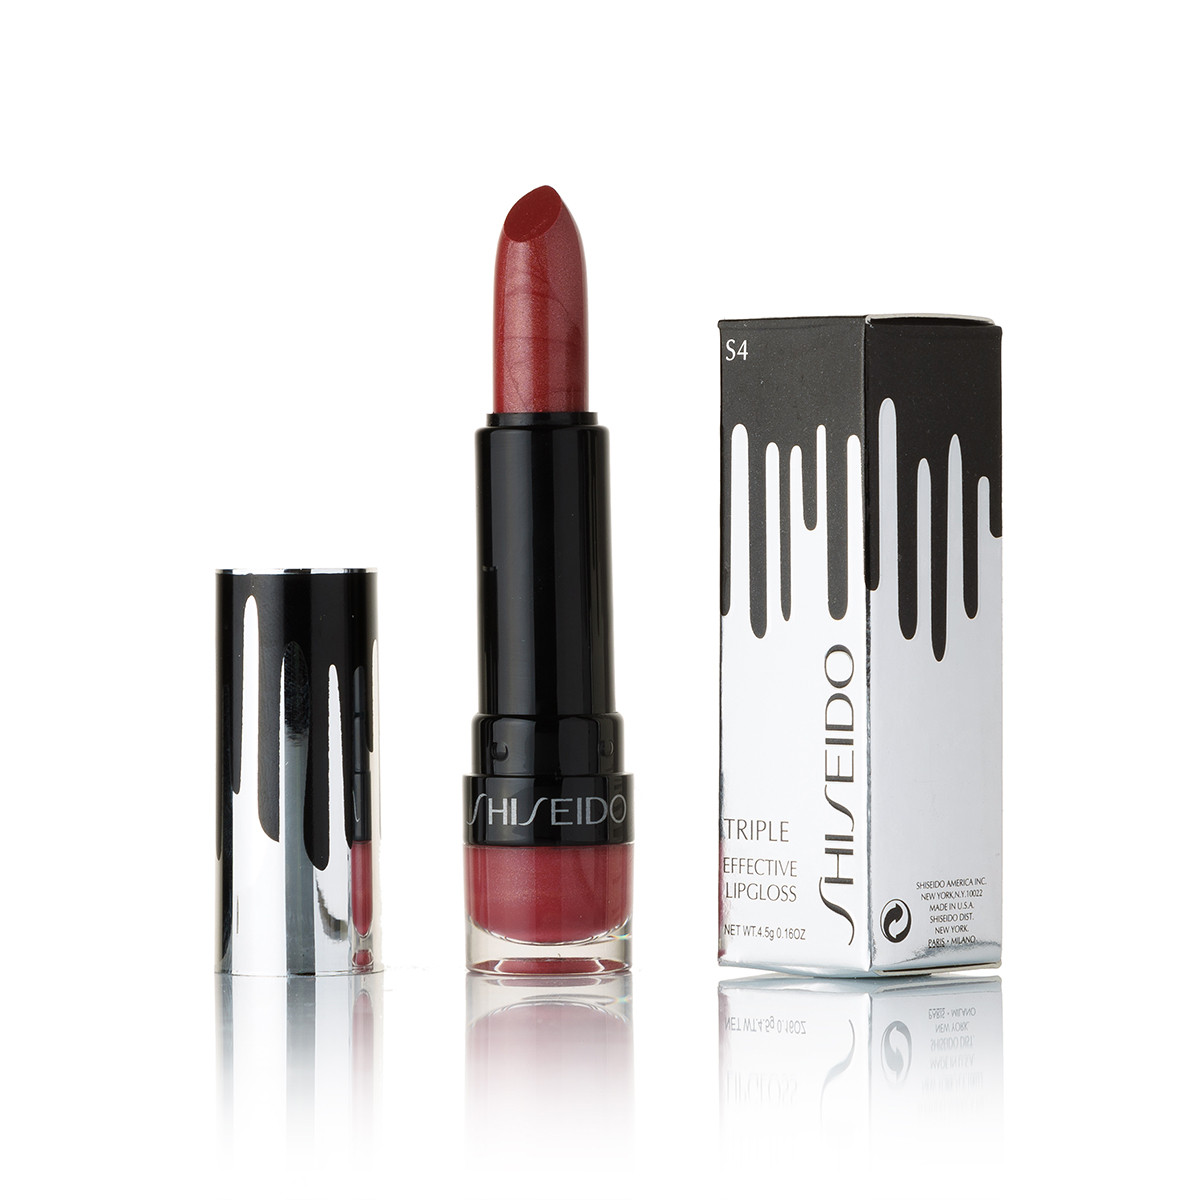 Помада Shiseido Triple Effective Lipgloss ( Палитра С - 12 шт) 29